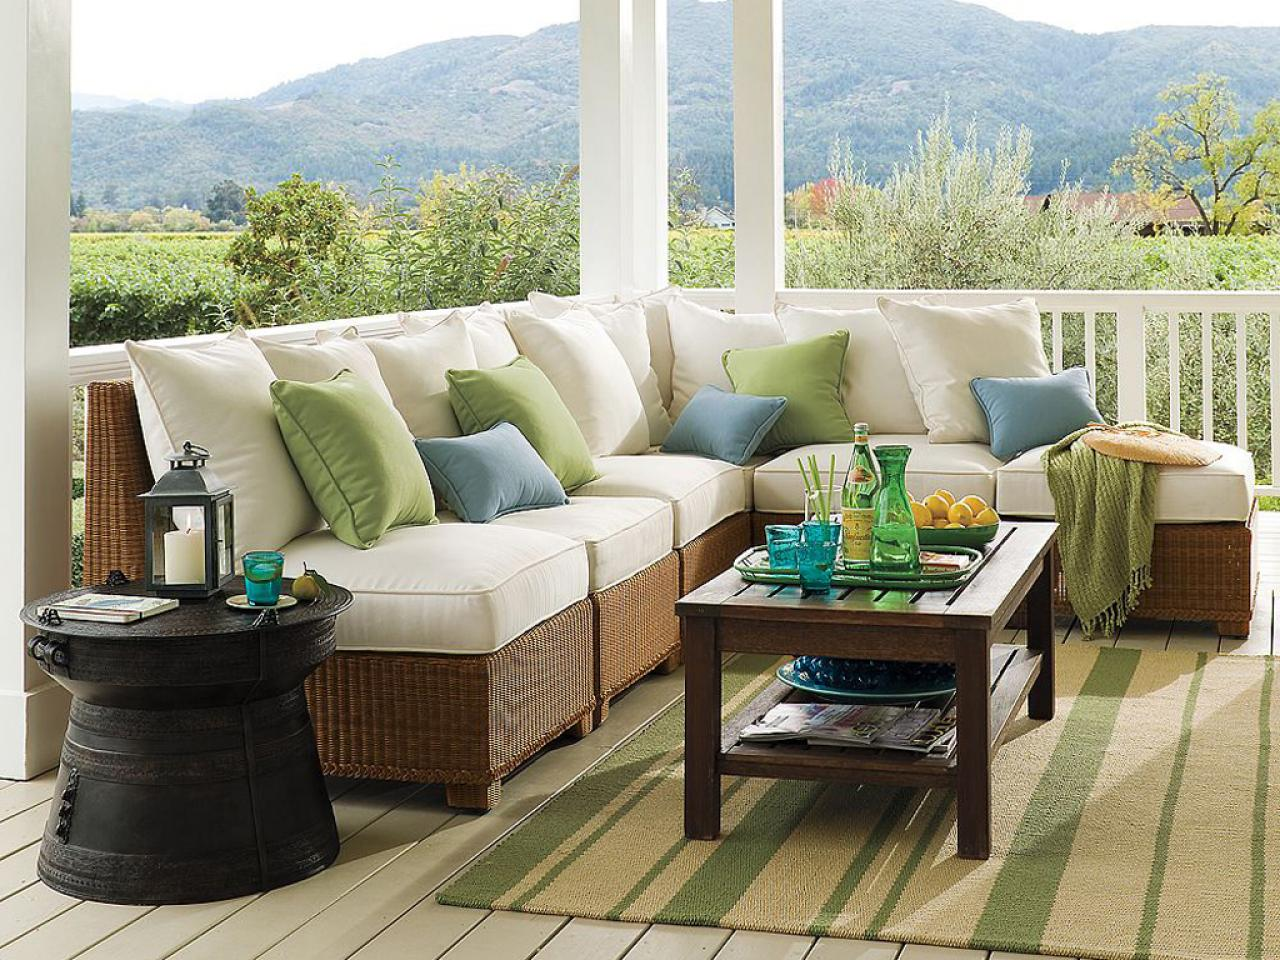 Image of: Modern Front Porch Furniture Sets